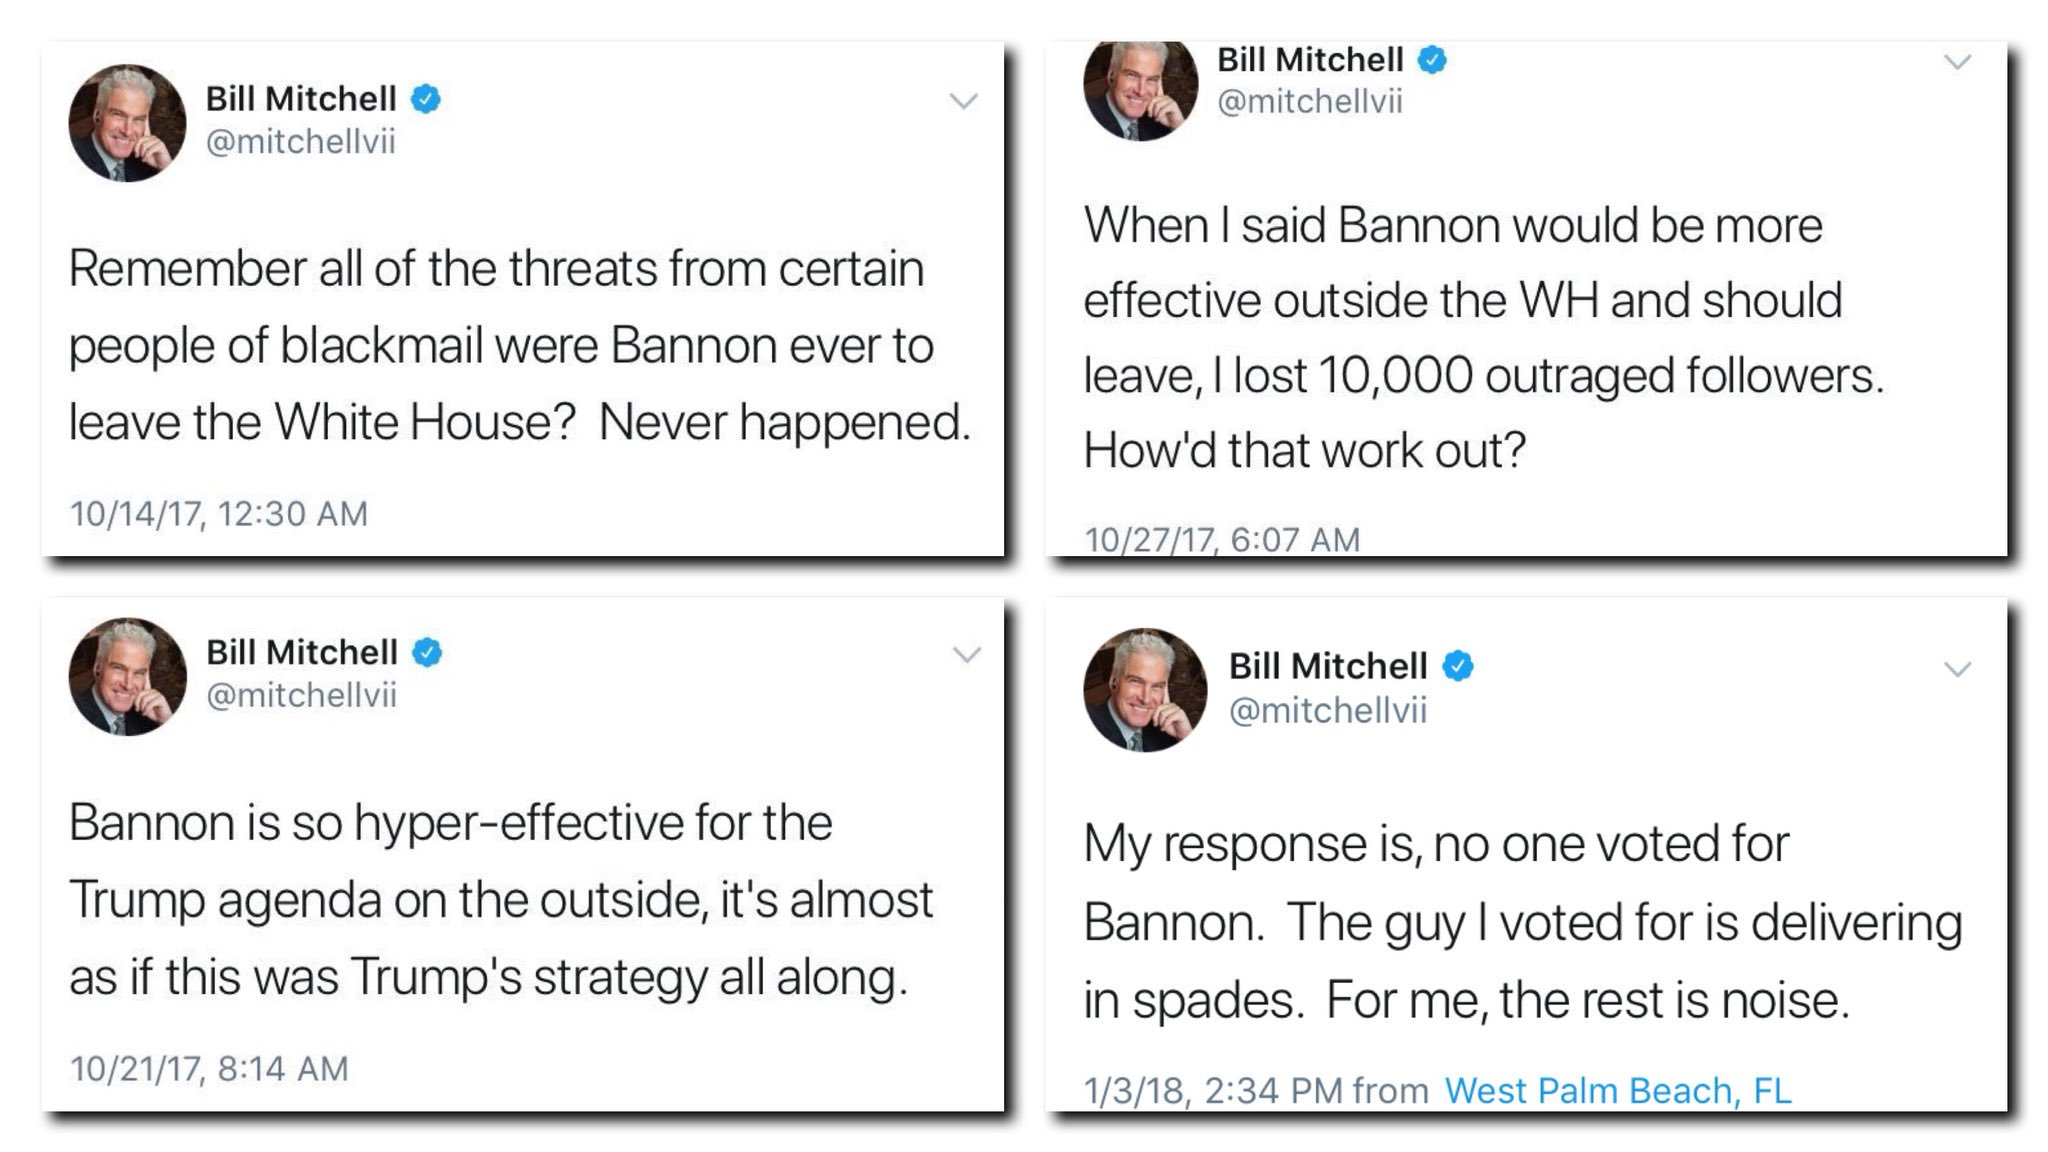 .@mitchellvii in 4. https://t.co/XAiXbOurUv